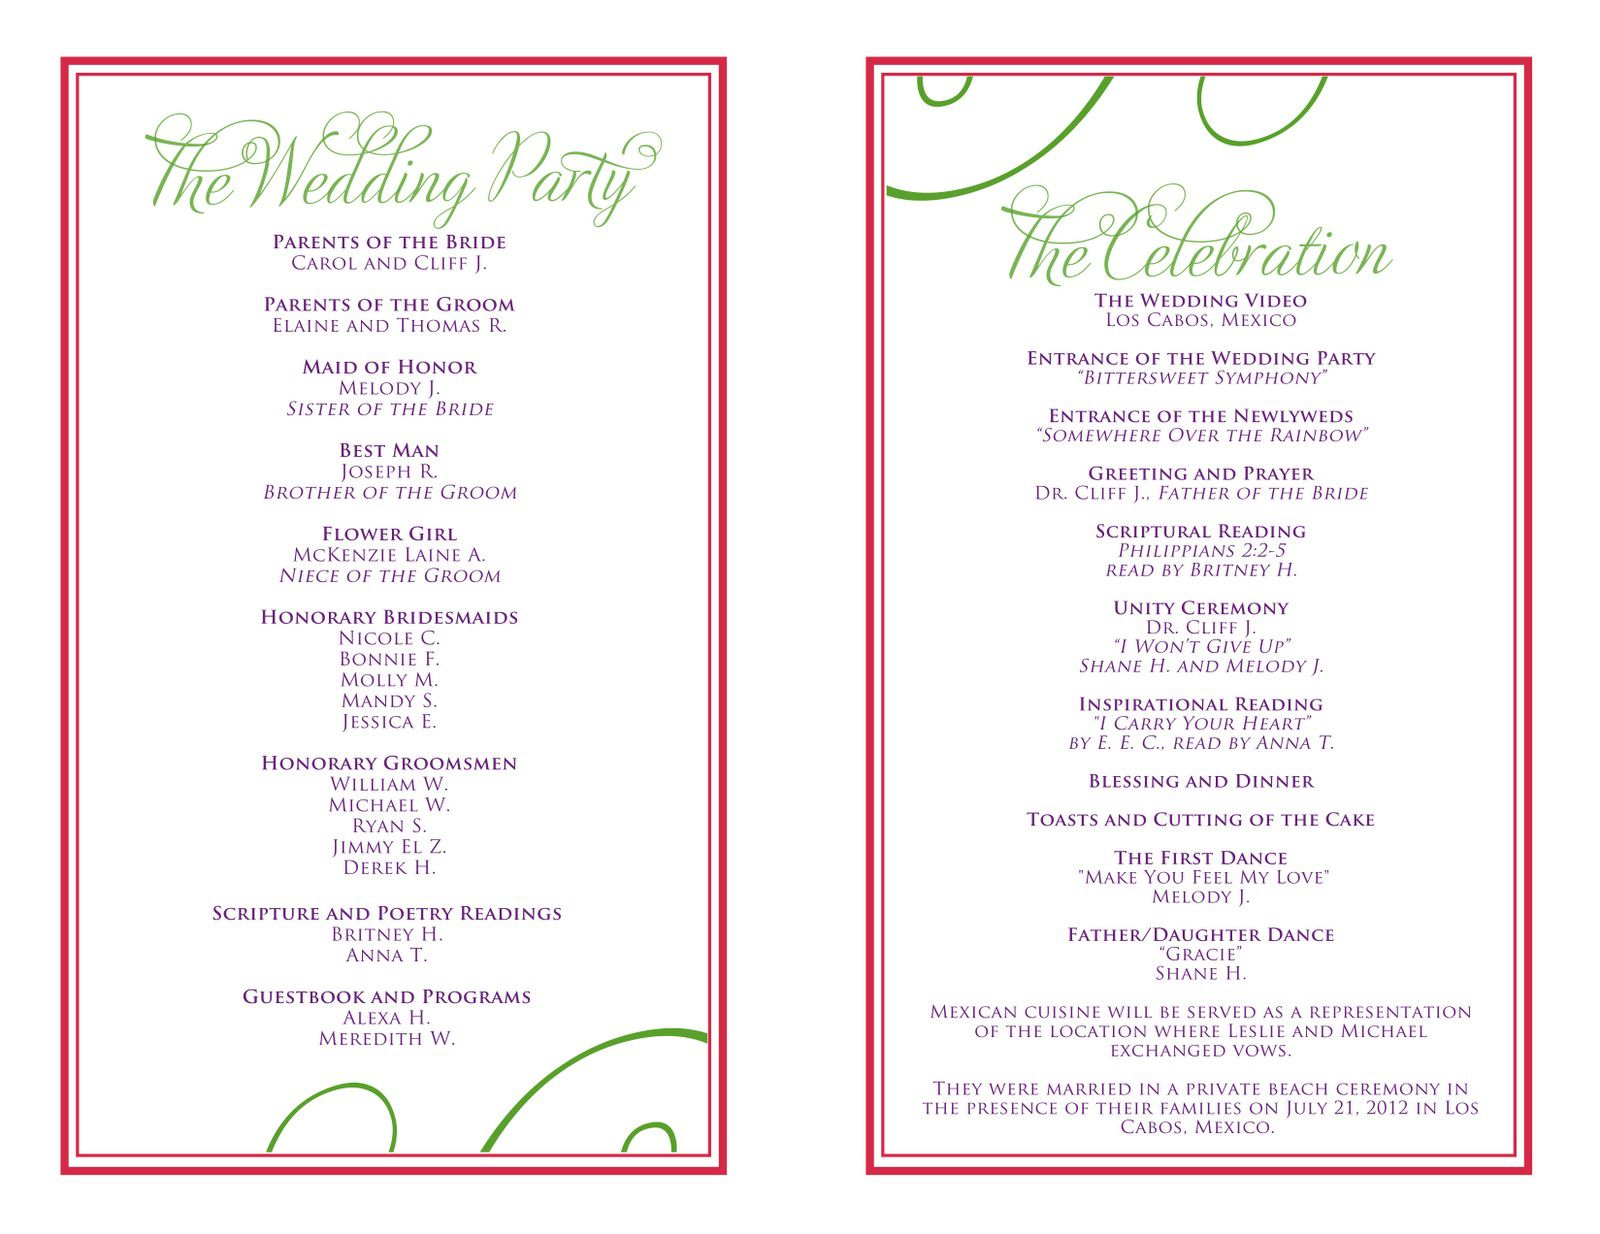 006 Shocking Wedding Reception Program Template Highest Quality  Templates Layout Free Download Ceremony AndFull